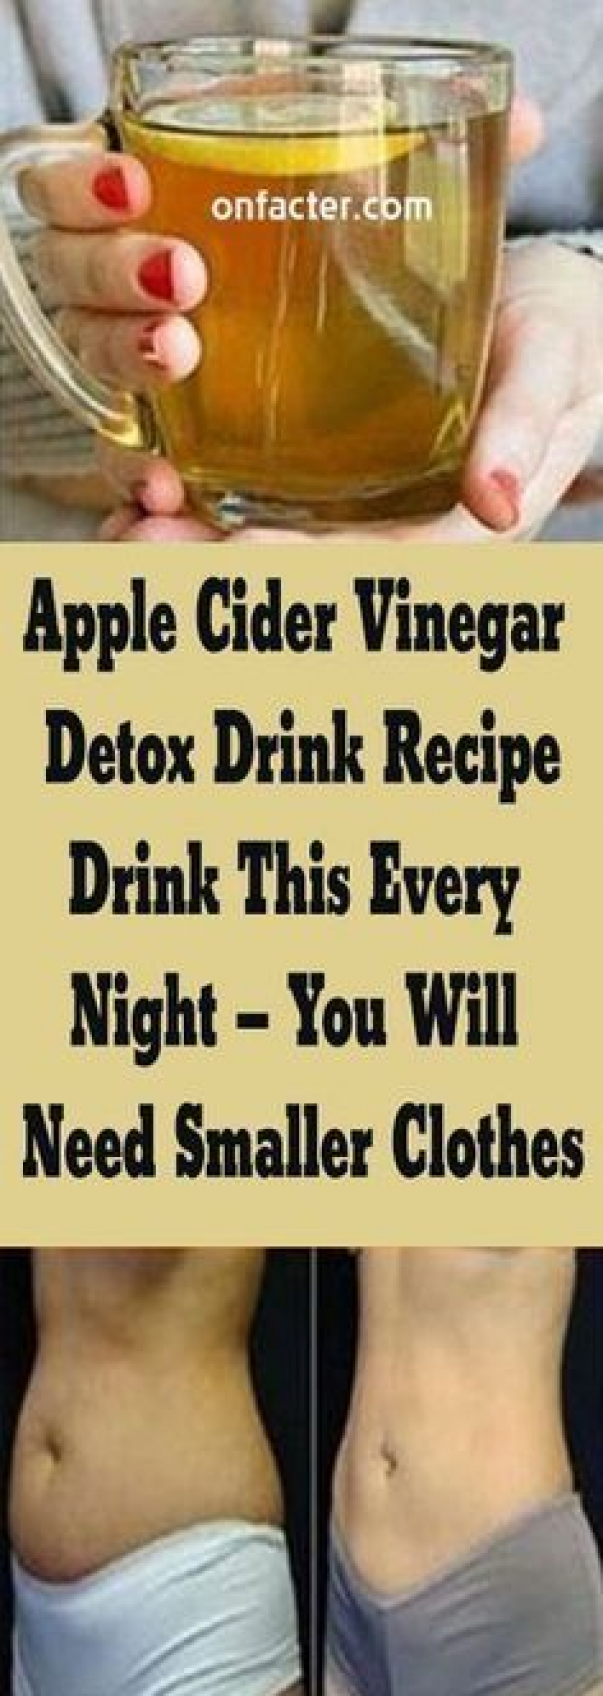 Apple Cider Vinegar Detox Drink Recipe:- Drink This Every Night  You Will Need Smaller Clothes #fitn...